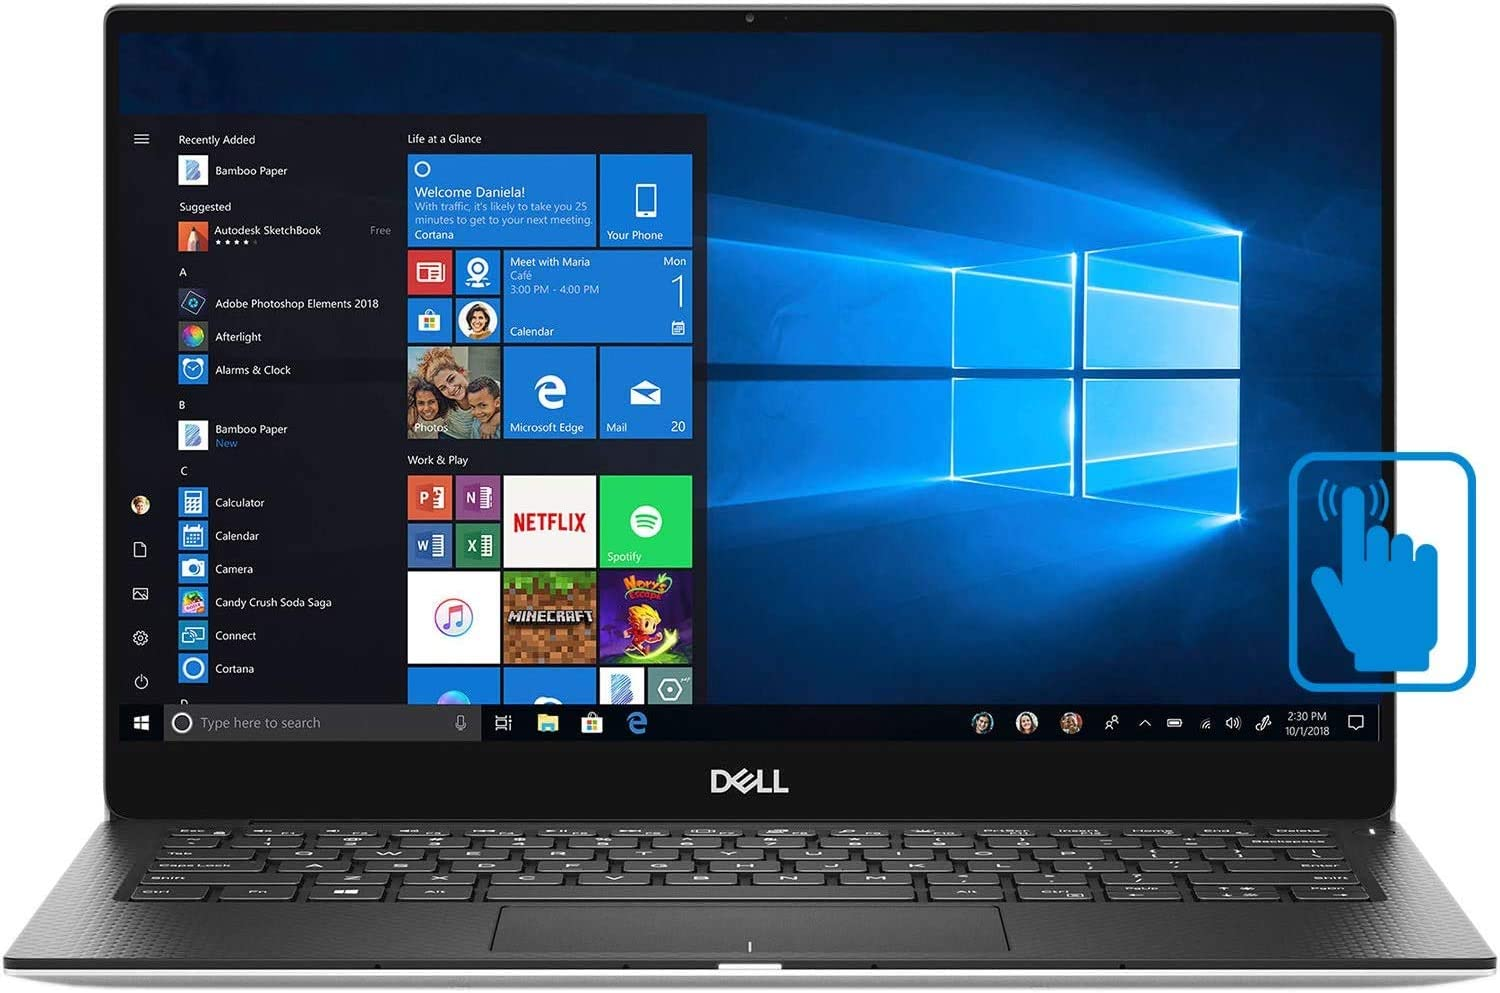 "Dell XPS 13 7390 Thin and Light 13.3"" InfinityEdge Touchscreen Laptop, Newest 10th Gen Intel i5-10210U up to 4.2GHz, 4GB RAM, 128GB PCIe SSD, Wi-Fi, Webcam, Fingerprint Reader, Windows 10 Home"